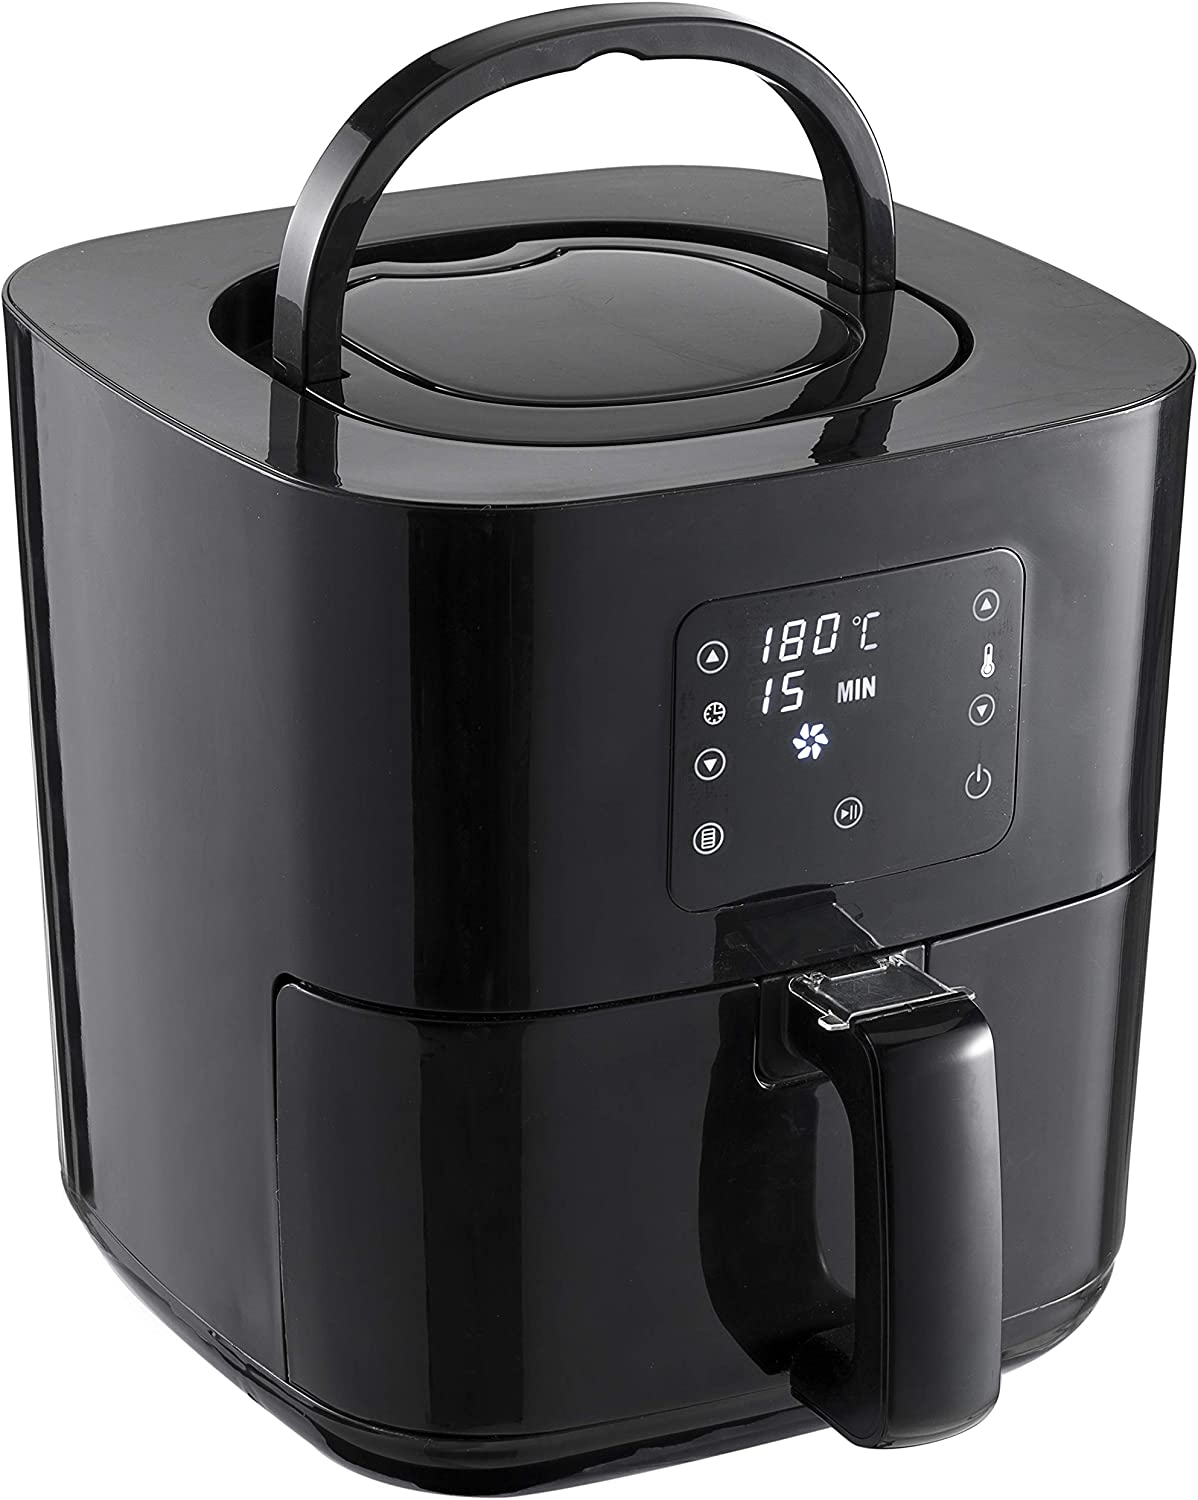 Nattork 3.8 QT 6-in-1 Electric Air Fryer Oven Review